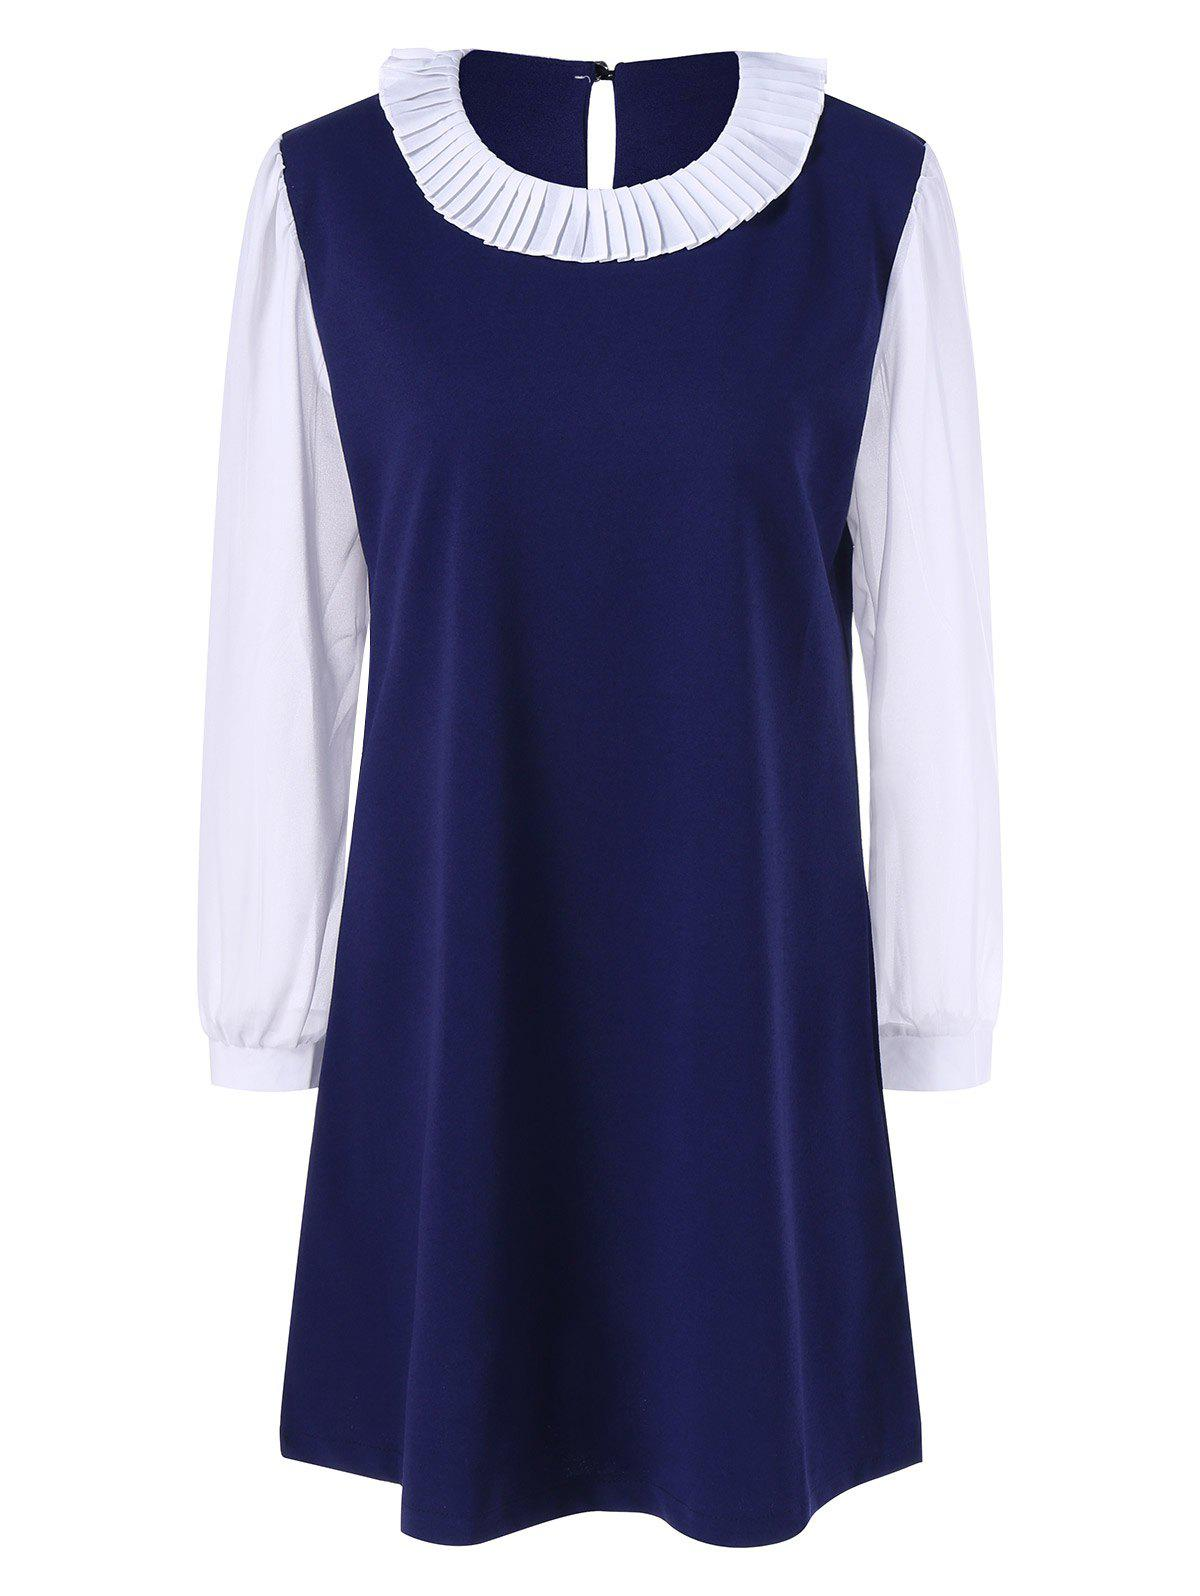 Long Sleeve Plus Size Color Block Dress - Bleu Violet 2XL